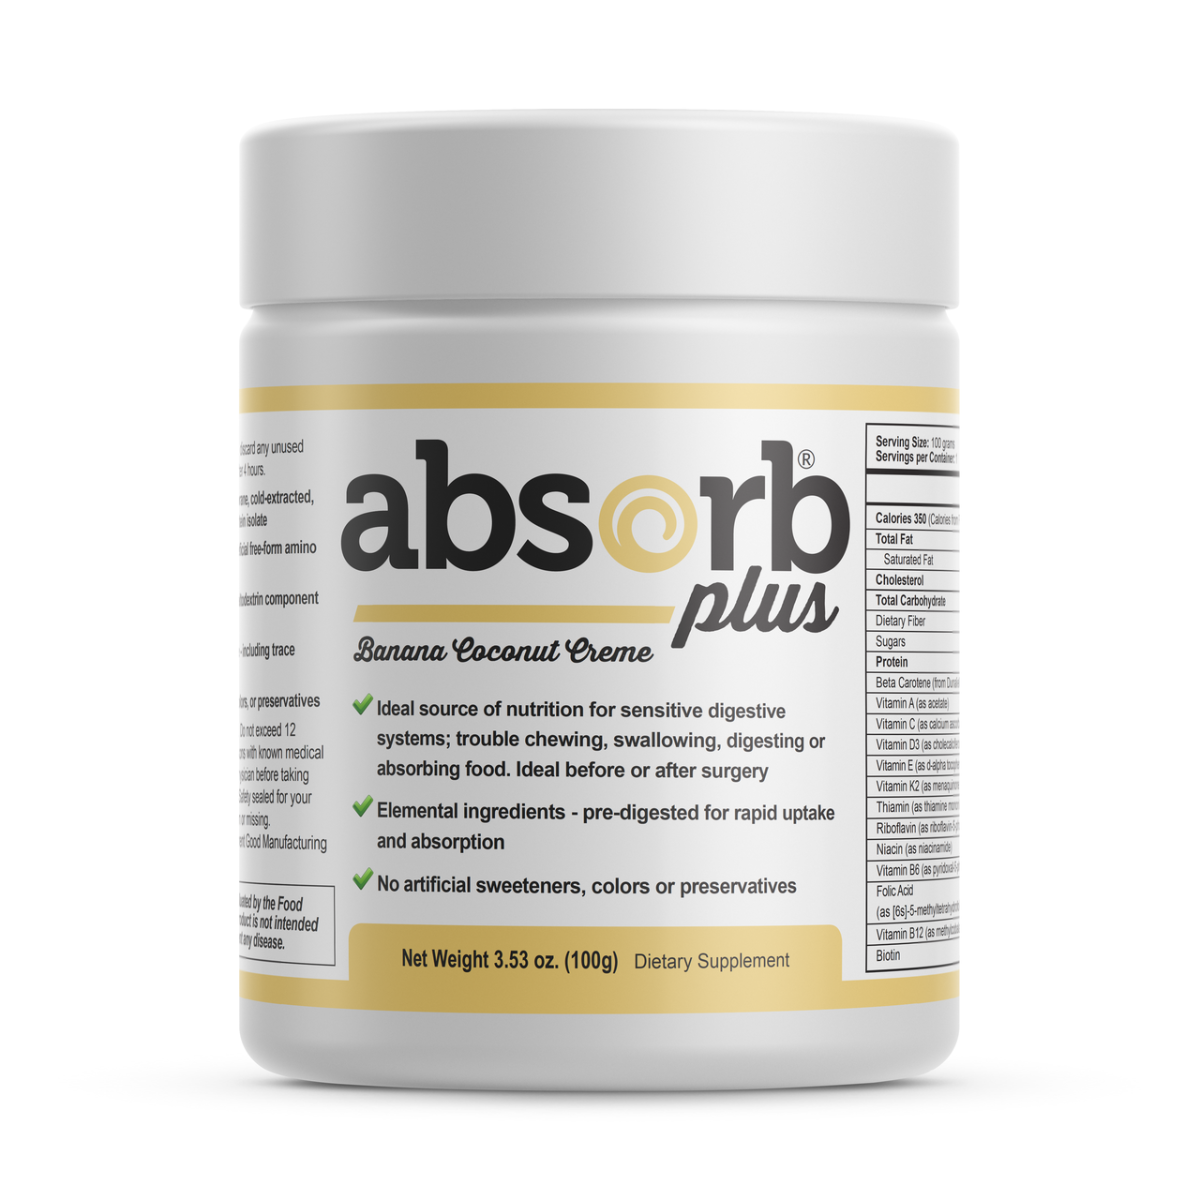 Absorb Plus (Sample Size) Banana Coconut Creme - 100g